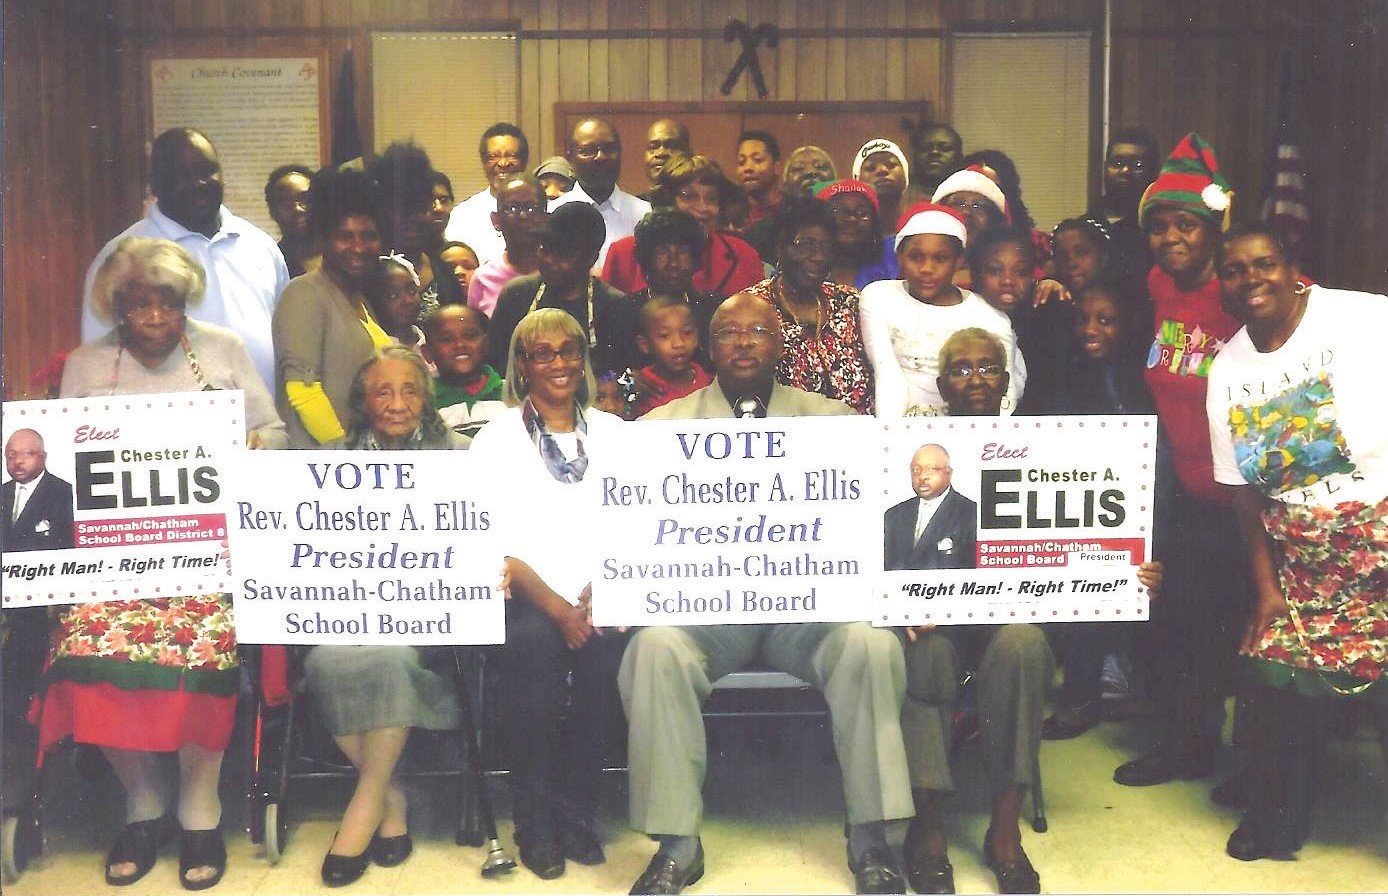 Rev. Chester Ellis (center) surrounded by supporters